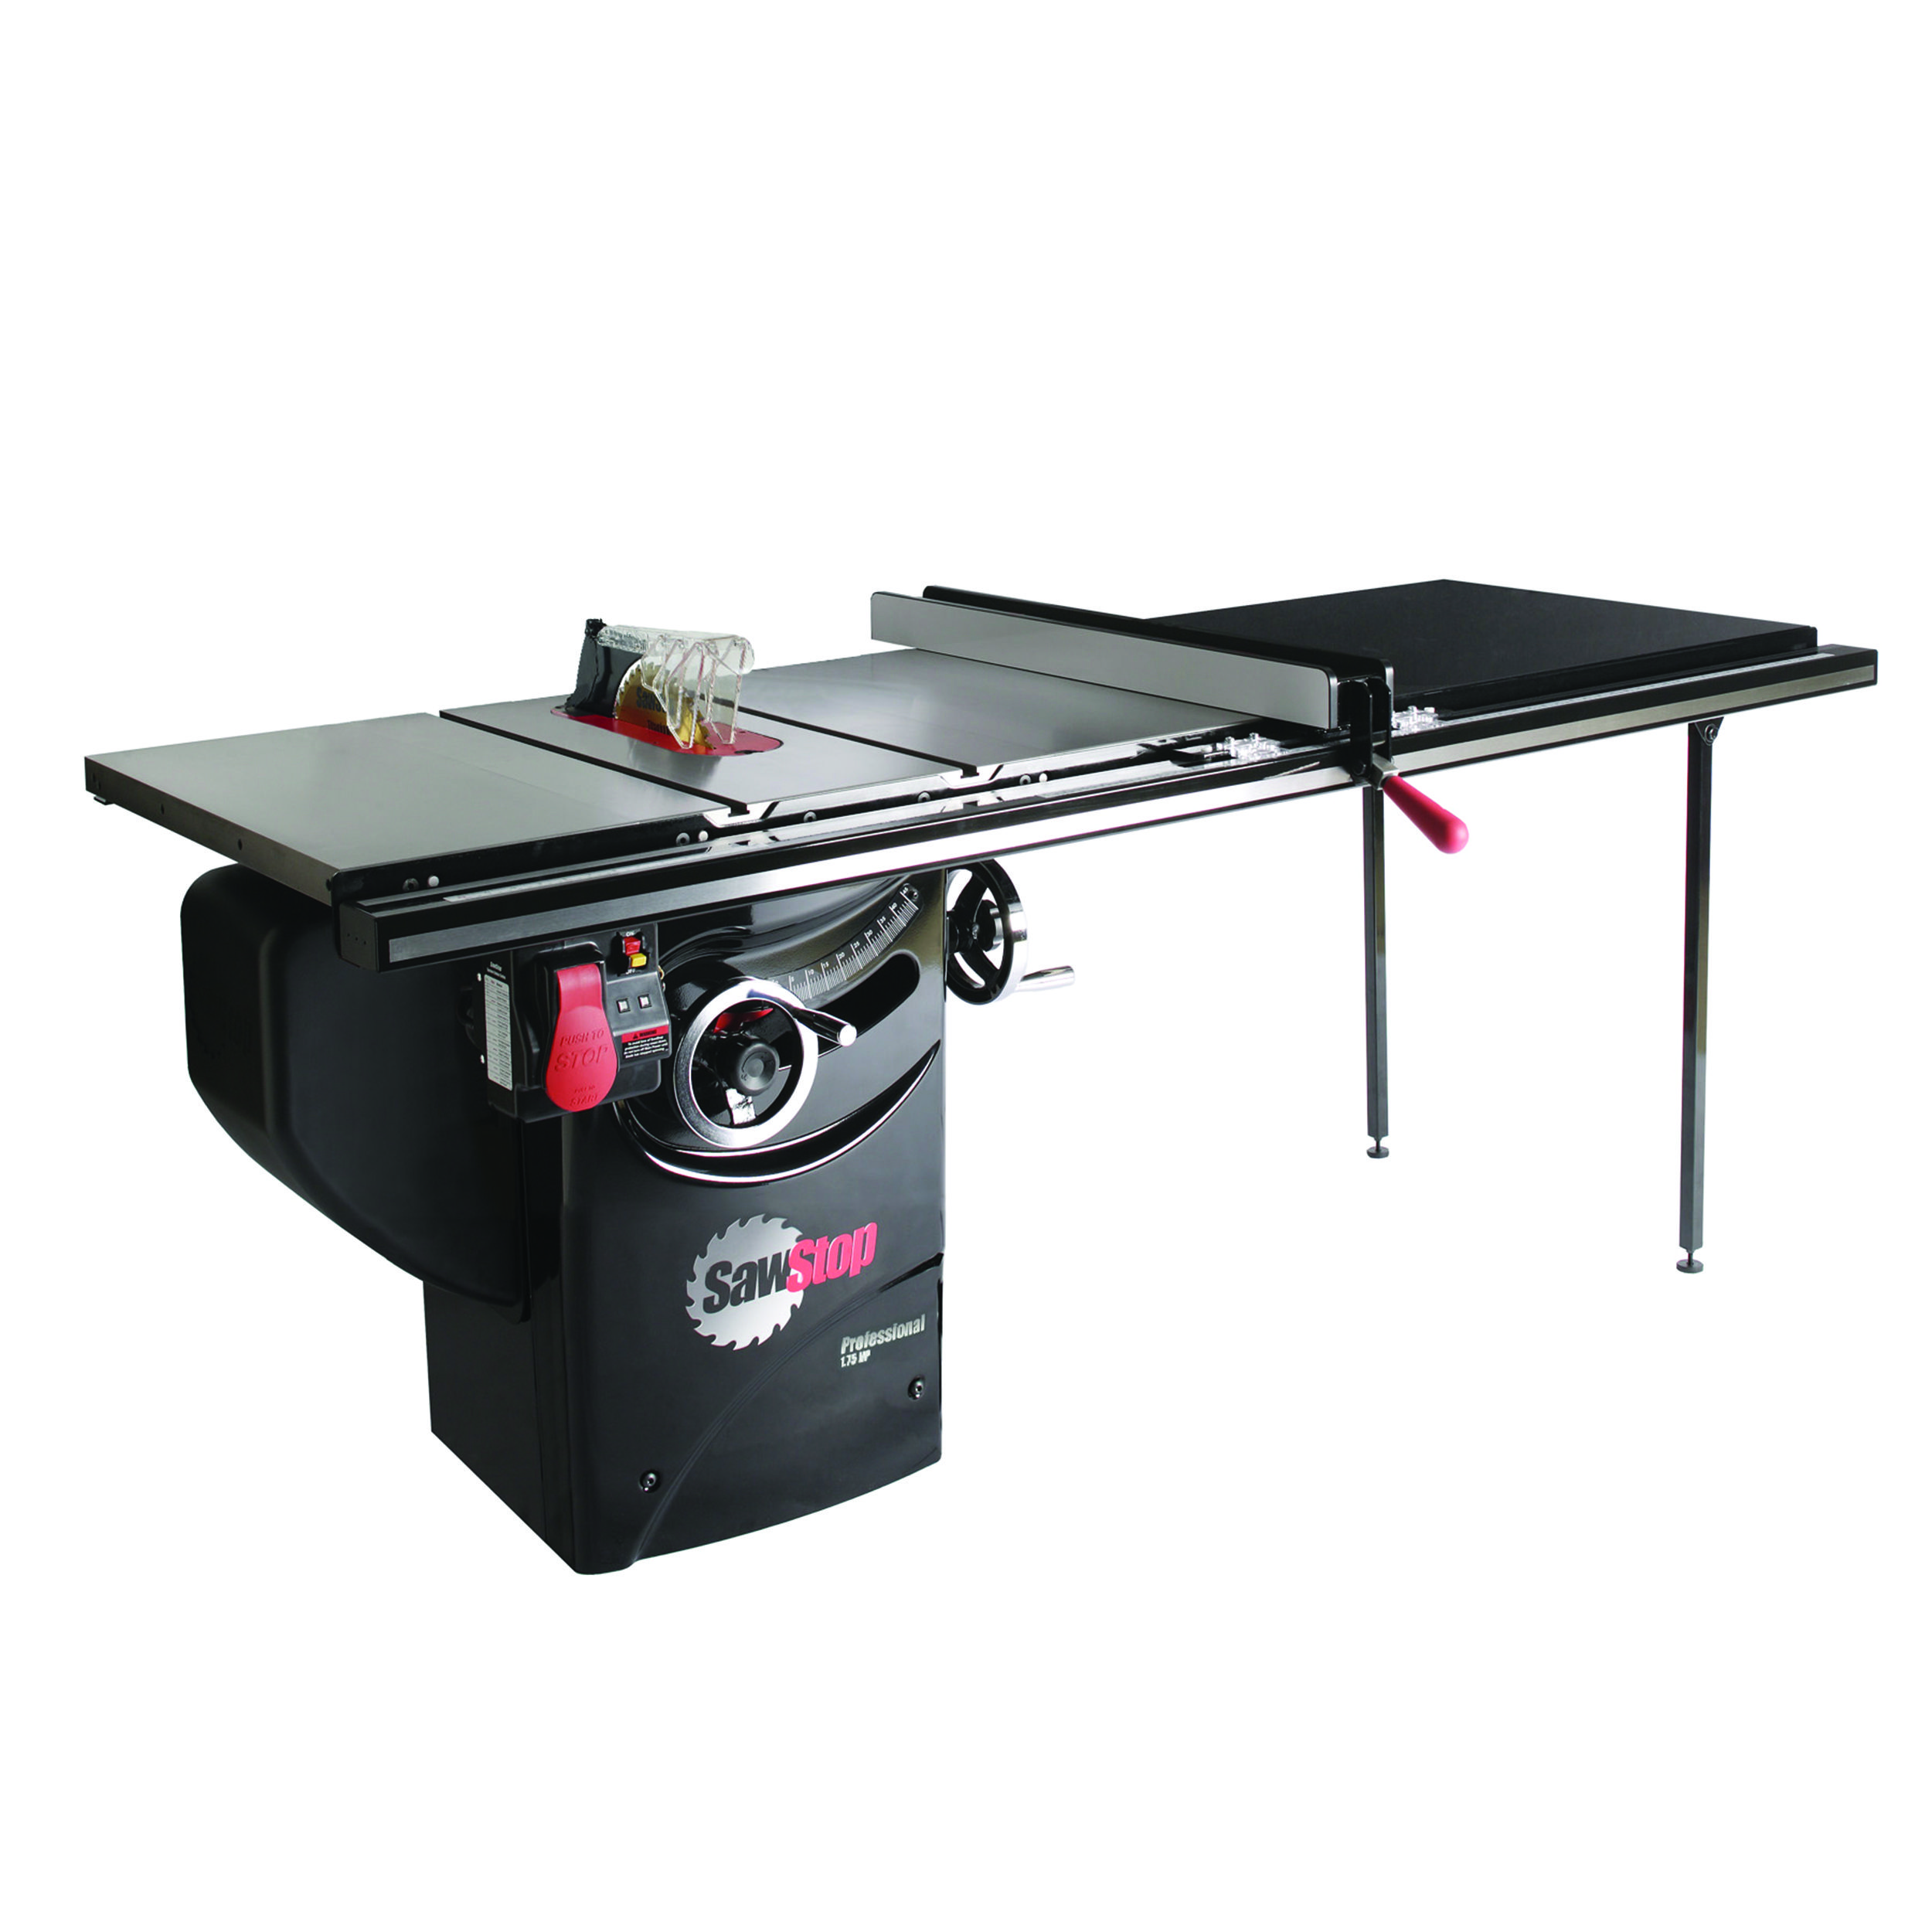 1 75 Hp Professional Cabinet Saw With 52 Professional T Glide Fence System Pcs175 Tgp252 Diy Sewing Table Table Saw Woodworking Shop